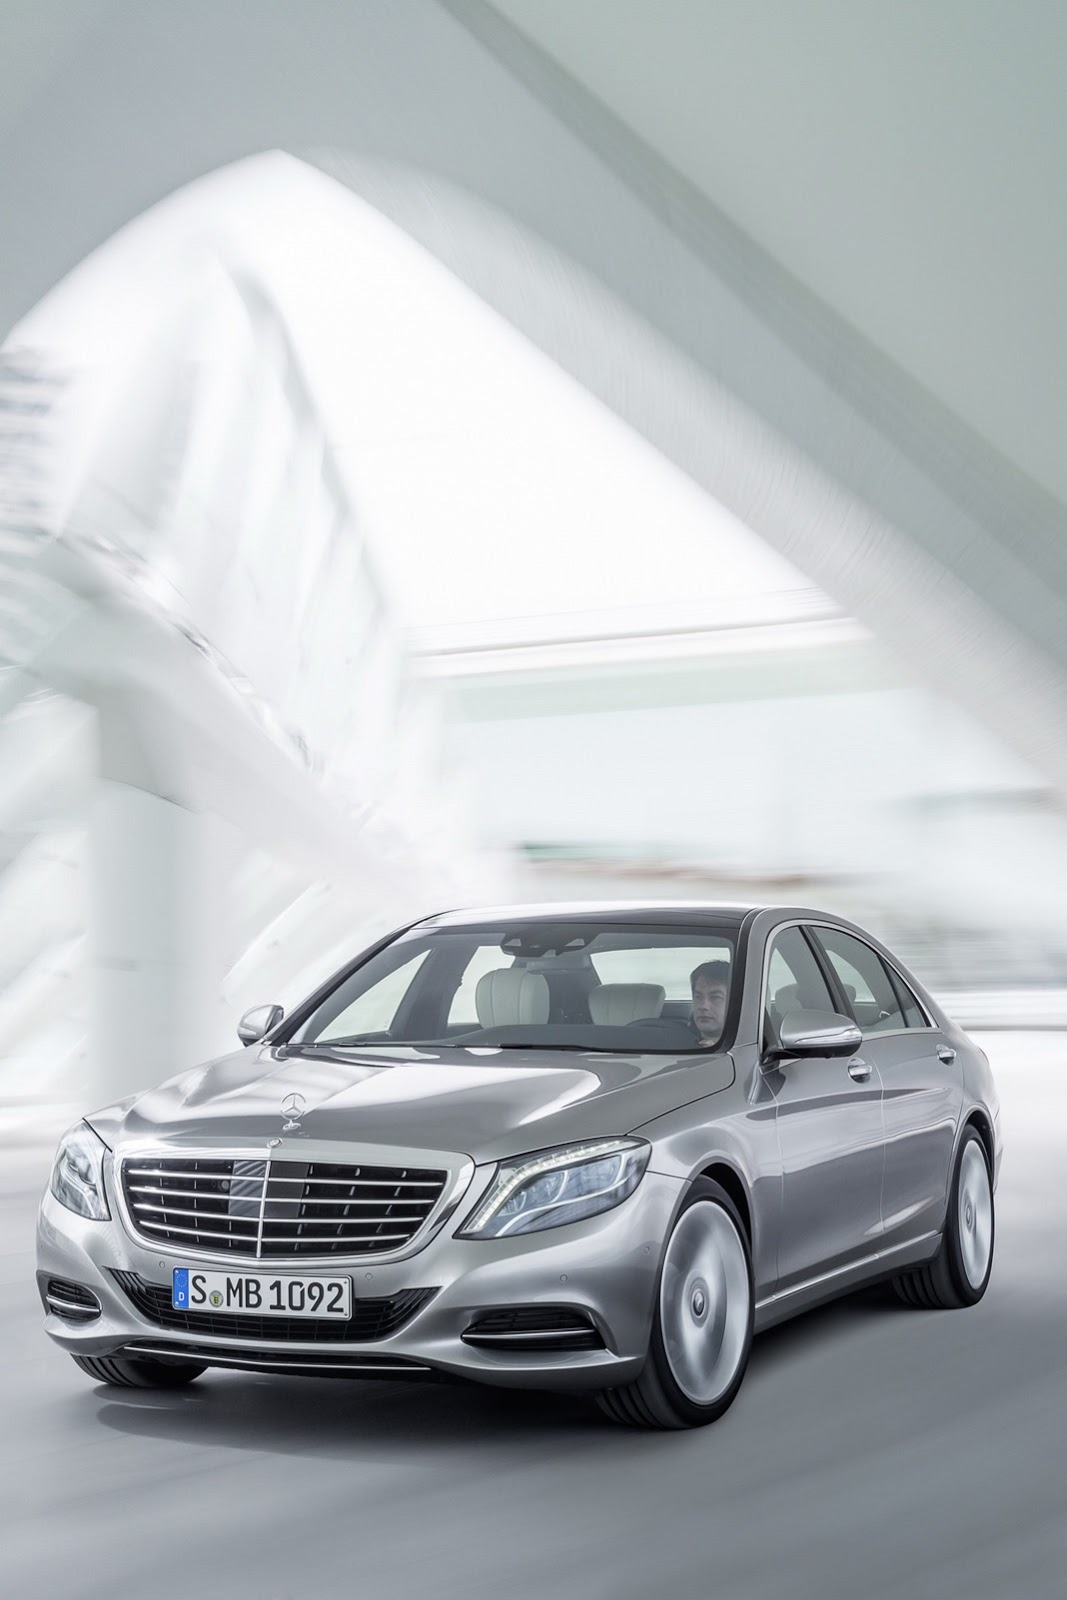 2014 Mercedes Benz S-Class - SMADE MEDIA (52)